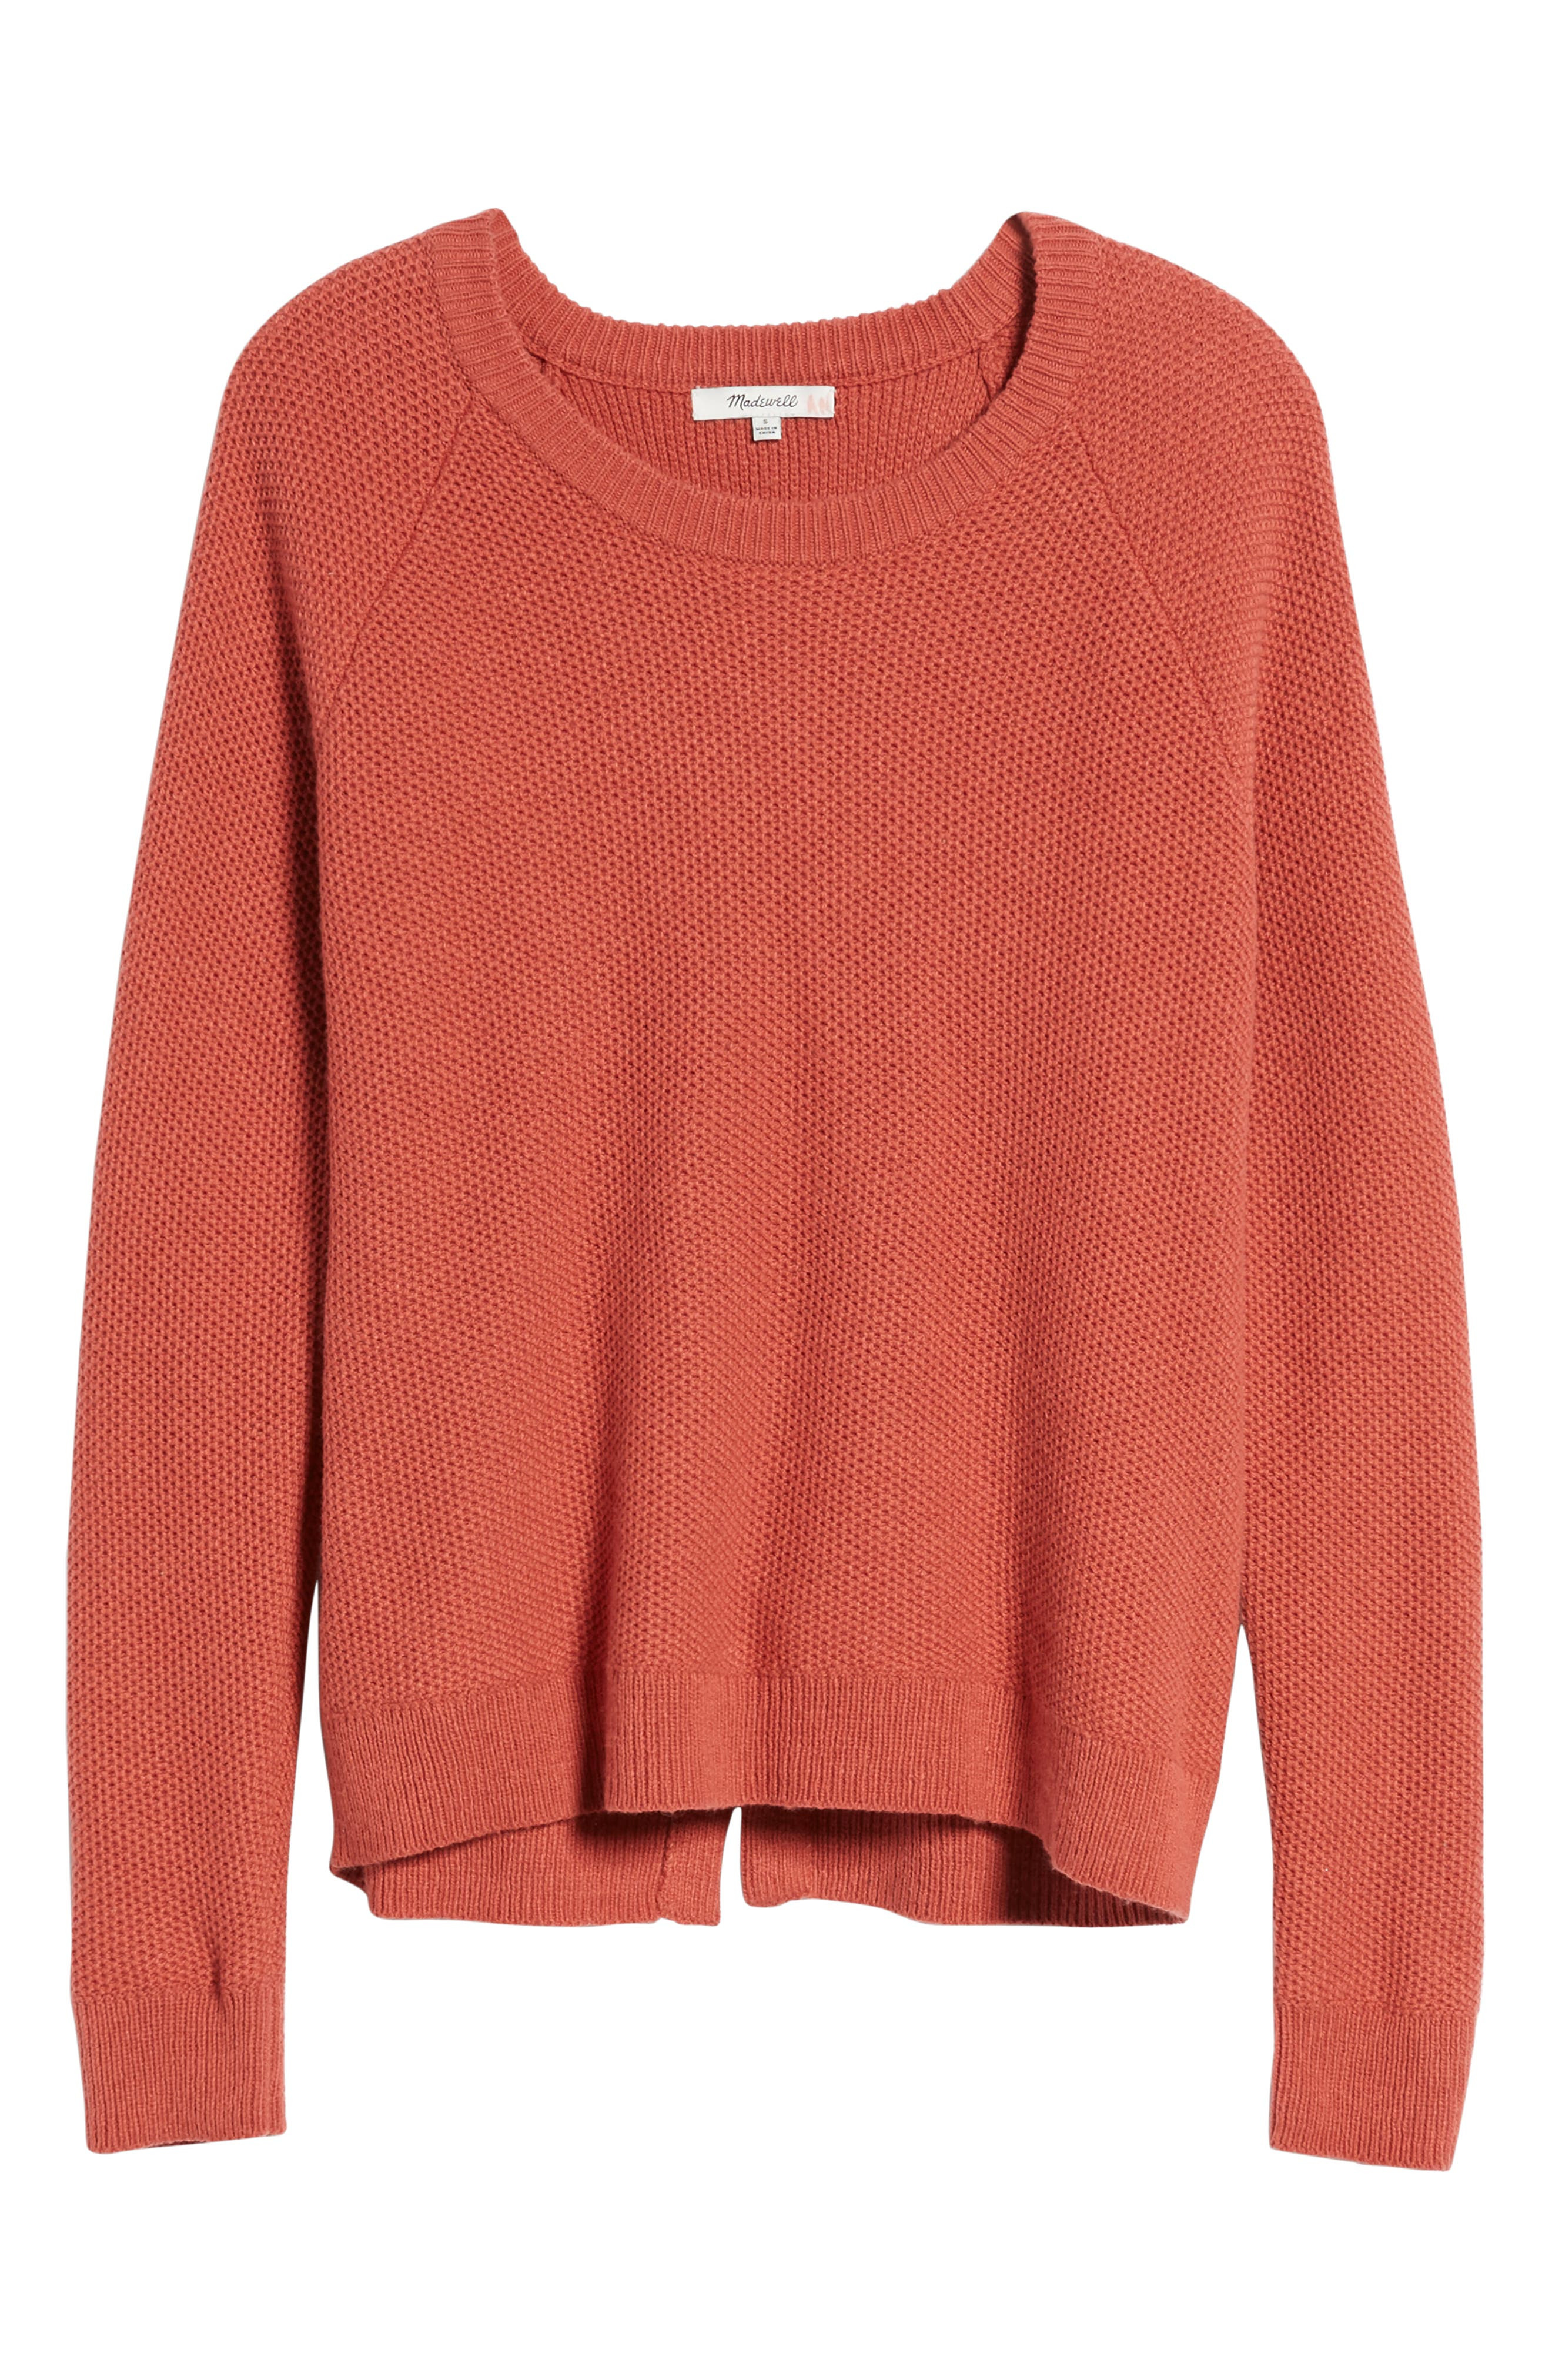 Province Cross Back Knit Pullover,                             Alternate thumbnail 7, color,                             Spiced Rose